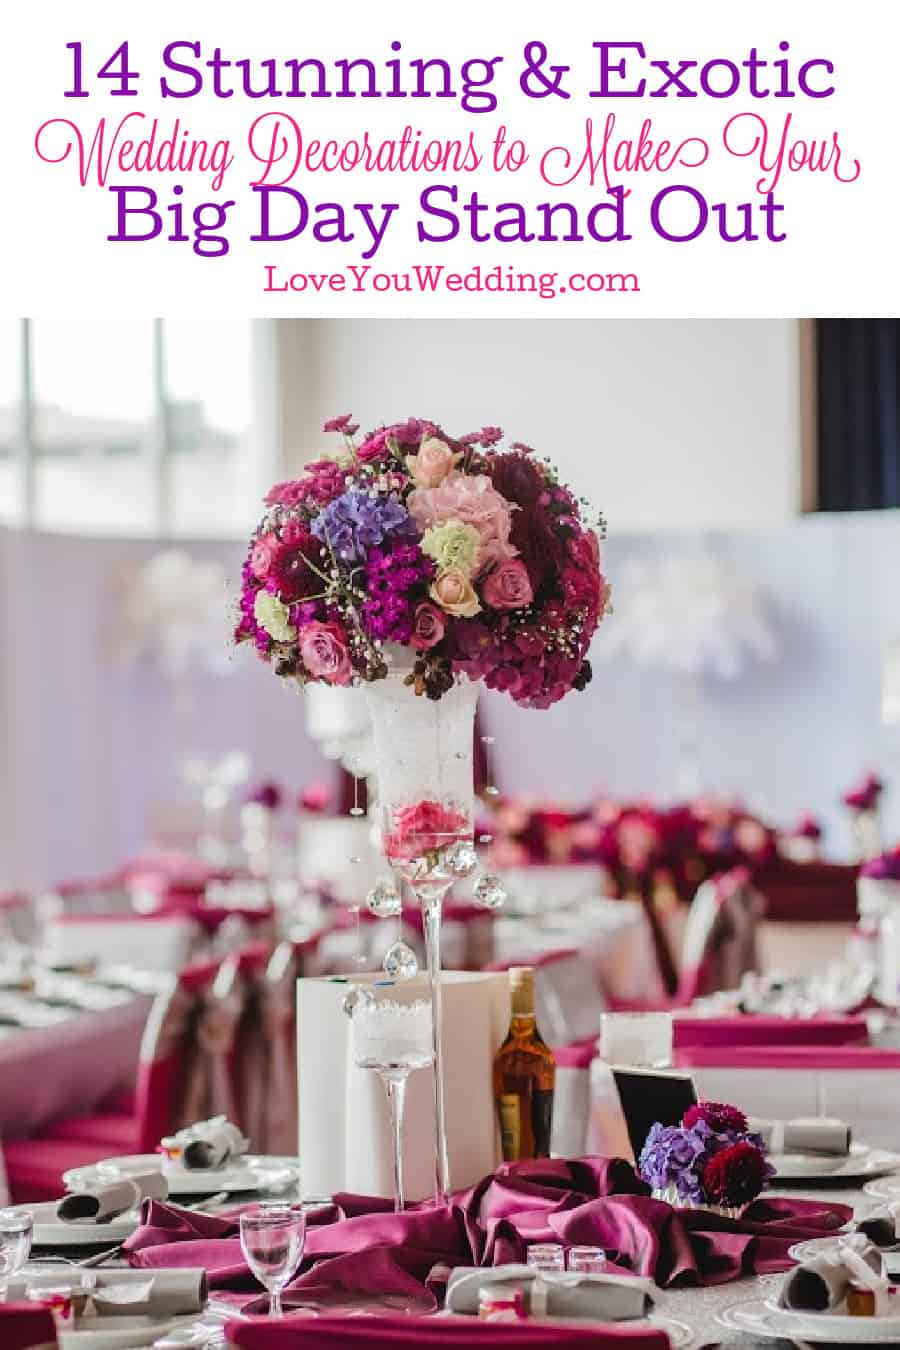 Looking for some exotic wedding decorations to really make your big day stand out? Check out these 14 nifty ideas to incorporate!